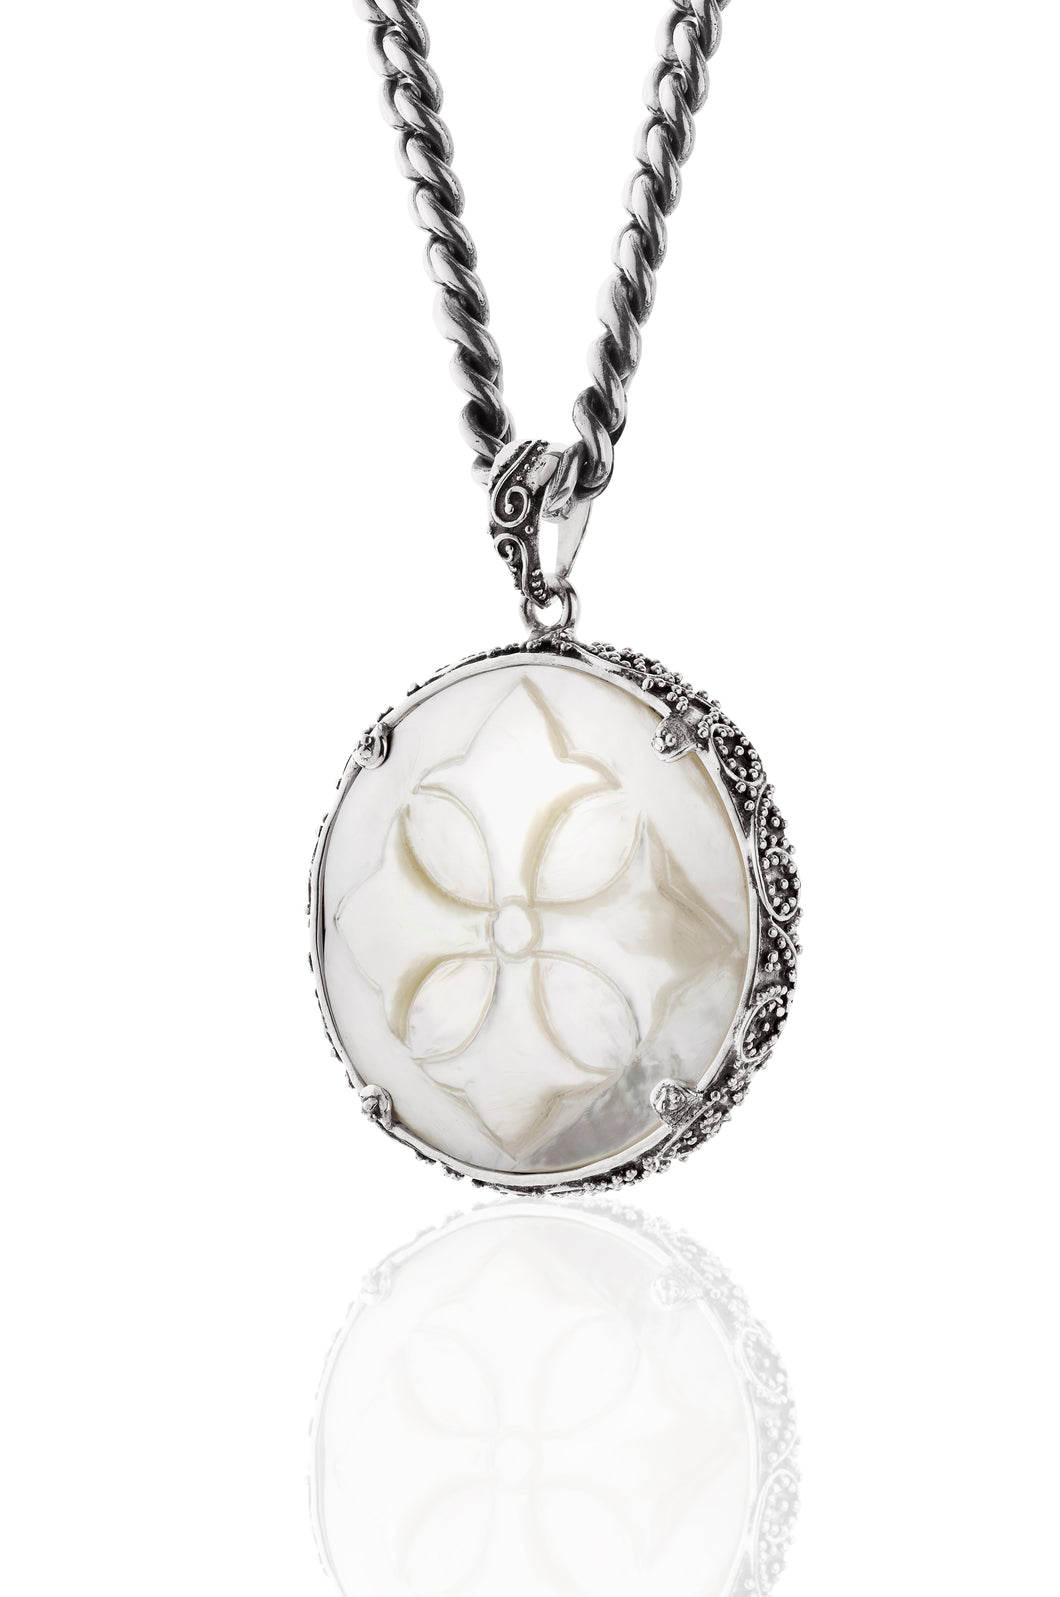 Samantha Large Round Pendant - pendant - KIR Collection - designer sterling silver jewelry